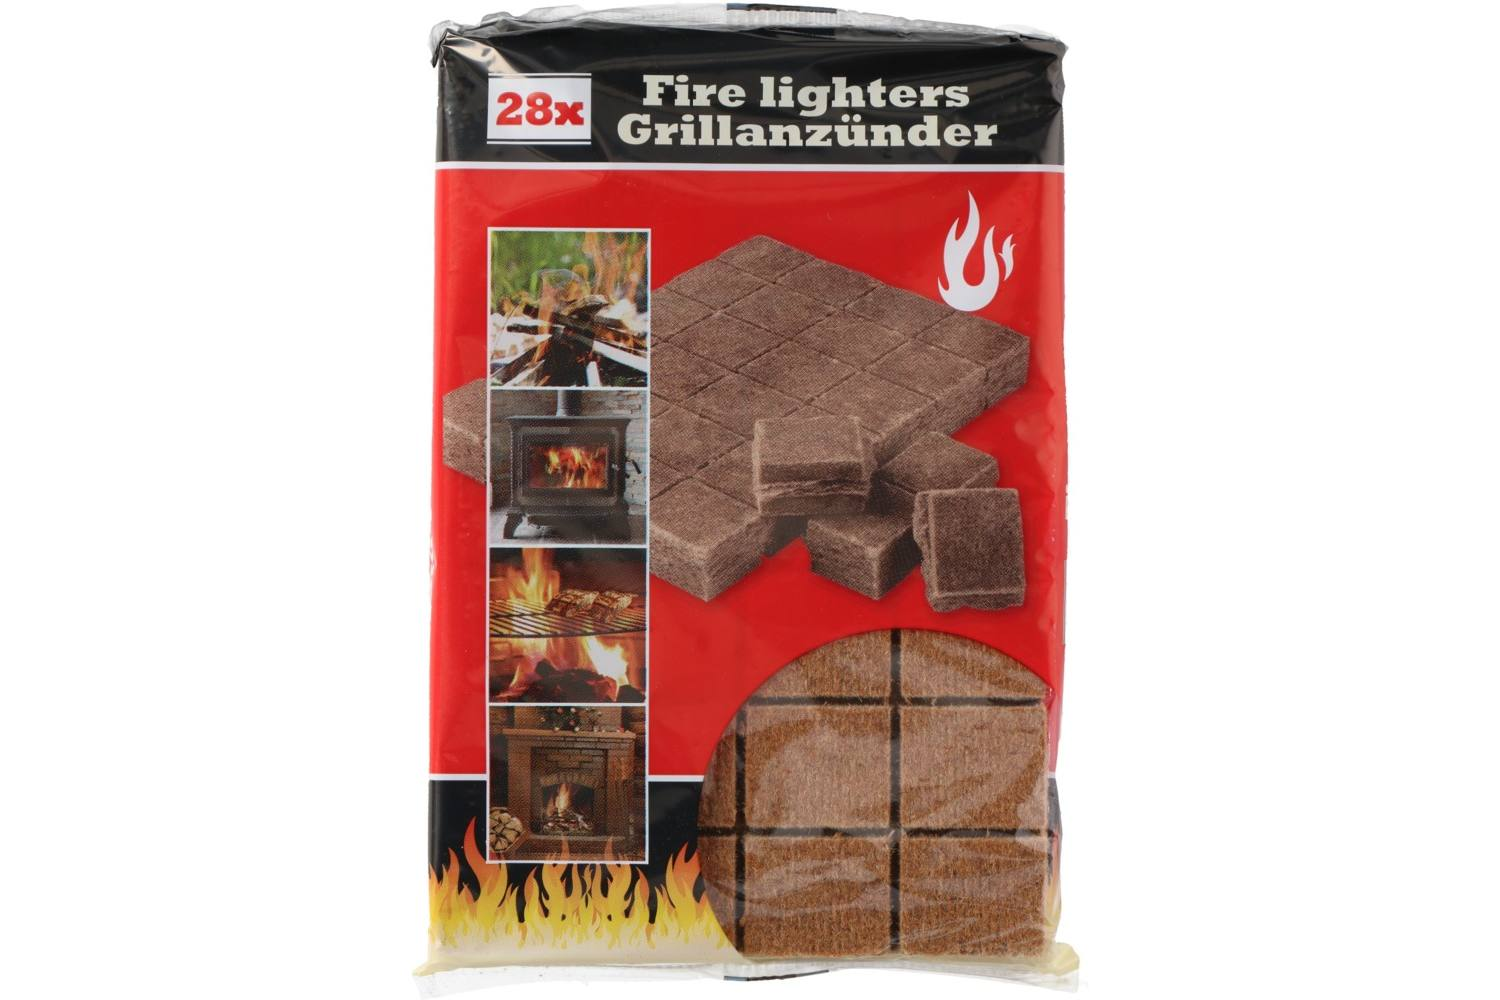 Firelighters, Newco 1